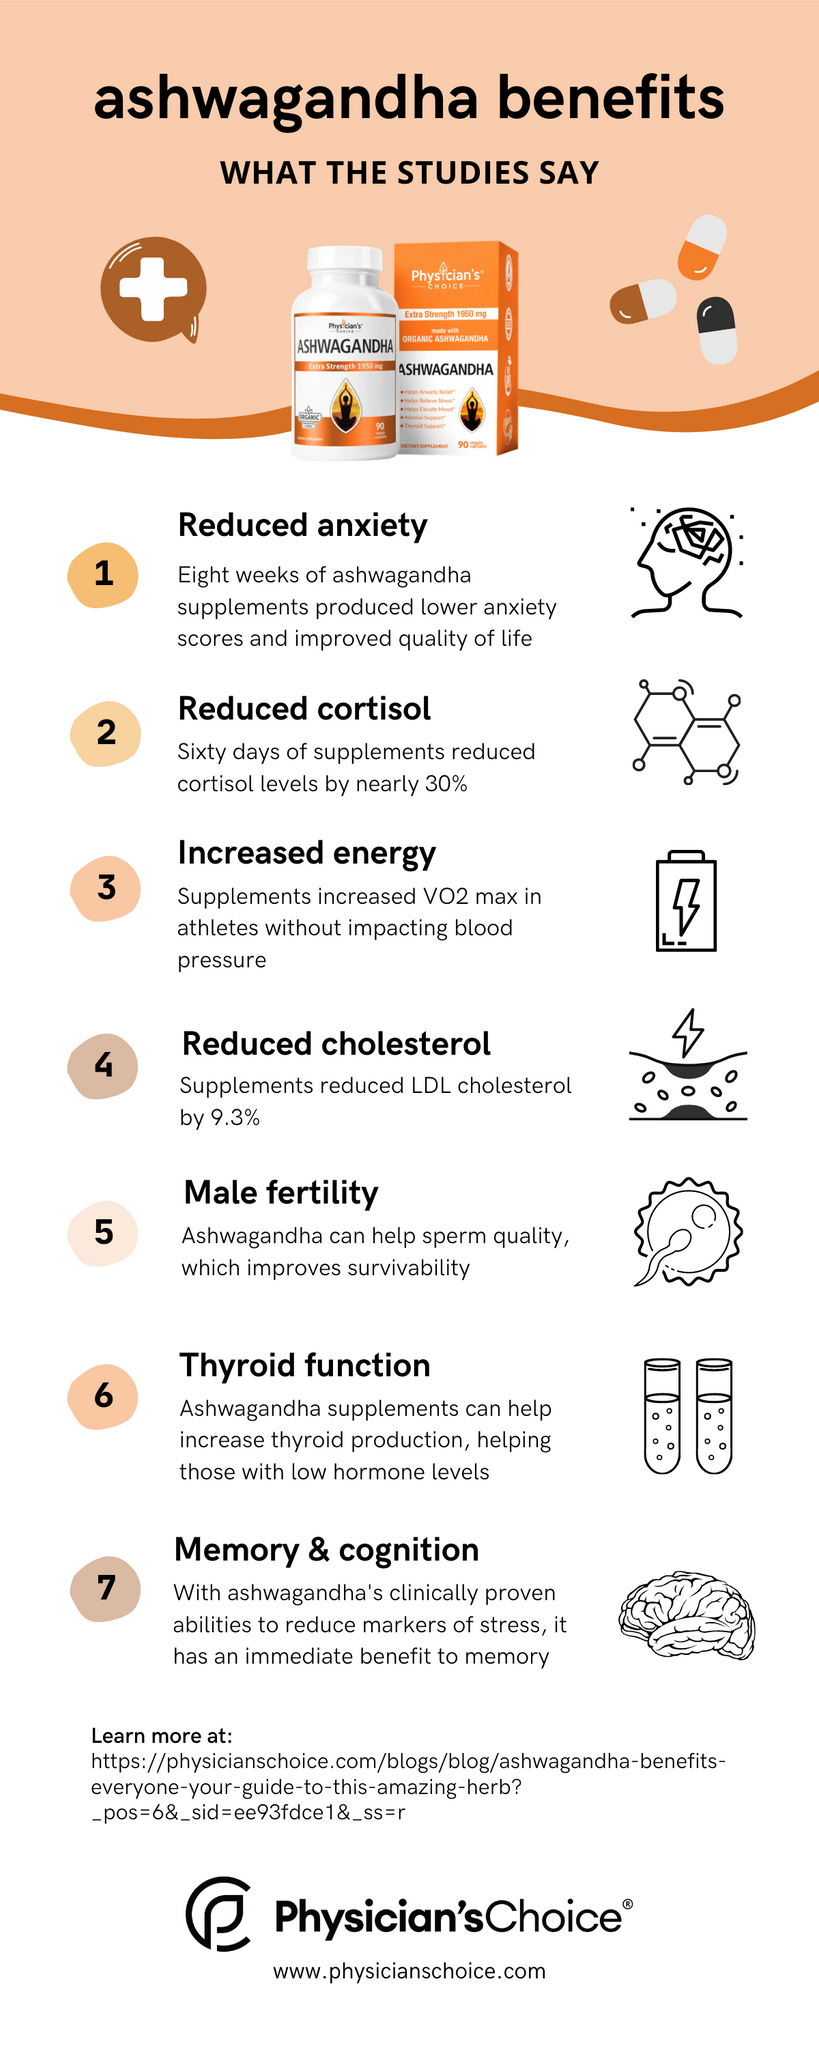 Infographic explaining the health benefits of ashwagandha